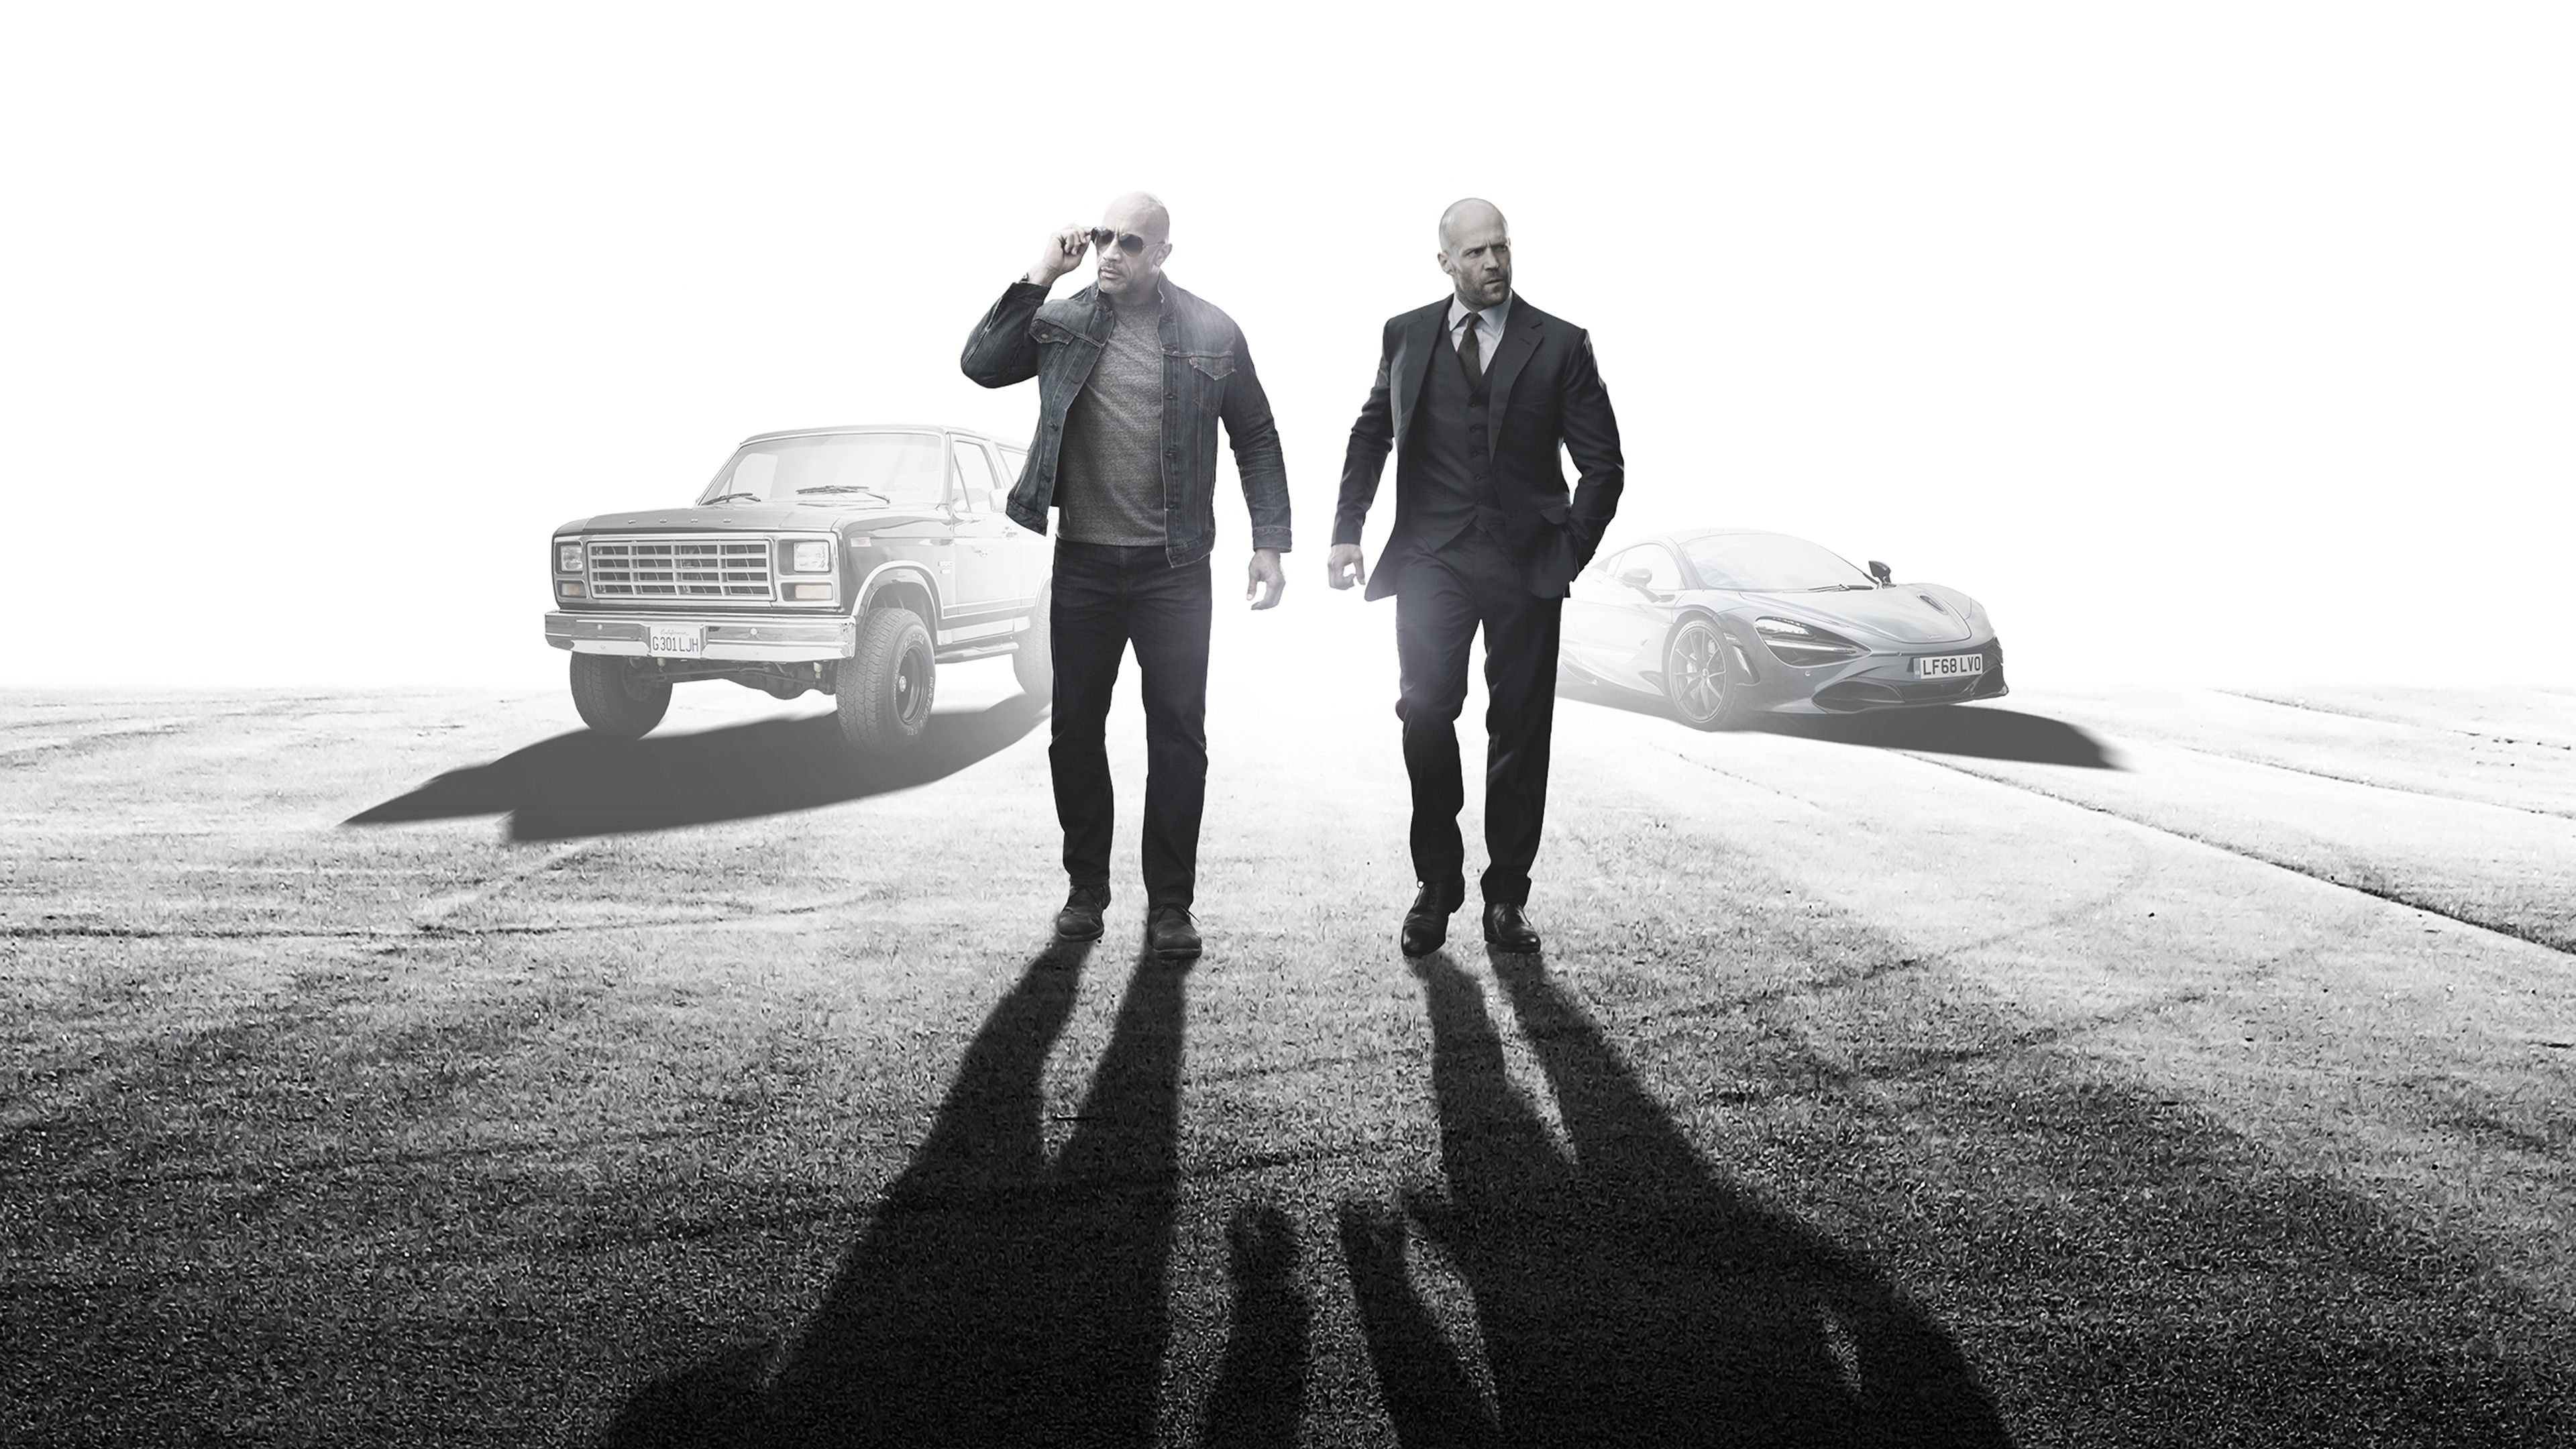 Fast Furious Presents Hobbs Shaw 4k Ultra HD Wallpaper 3840x2160